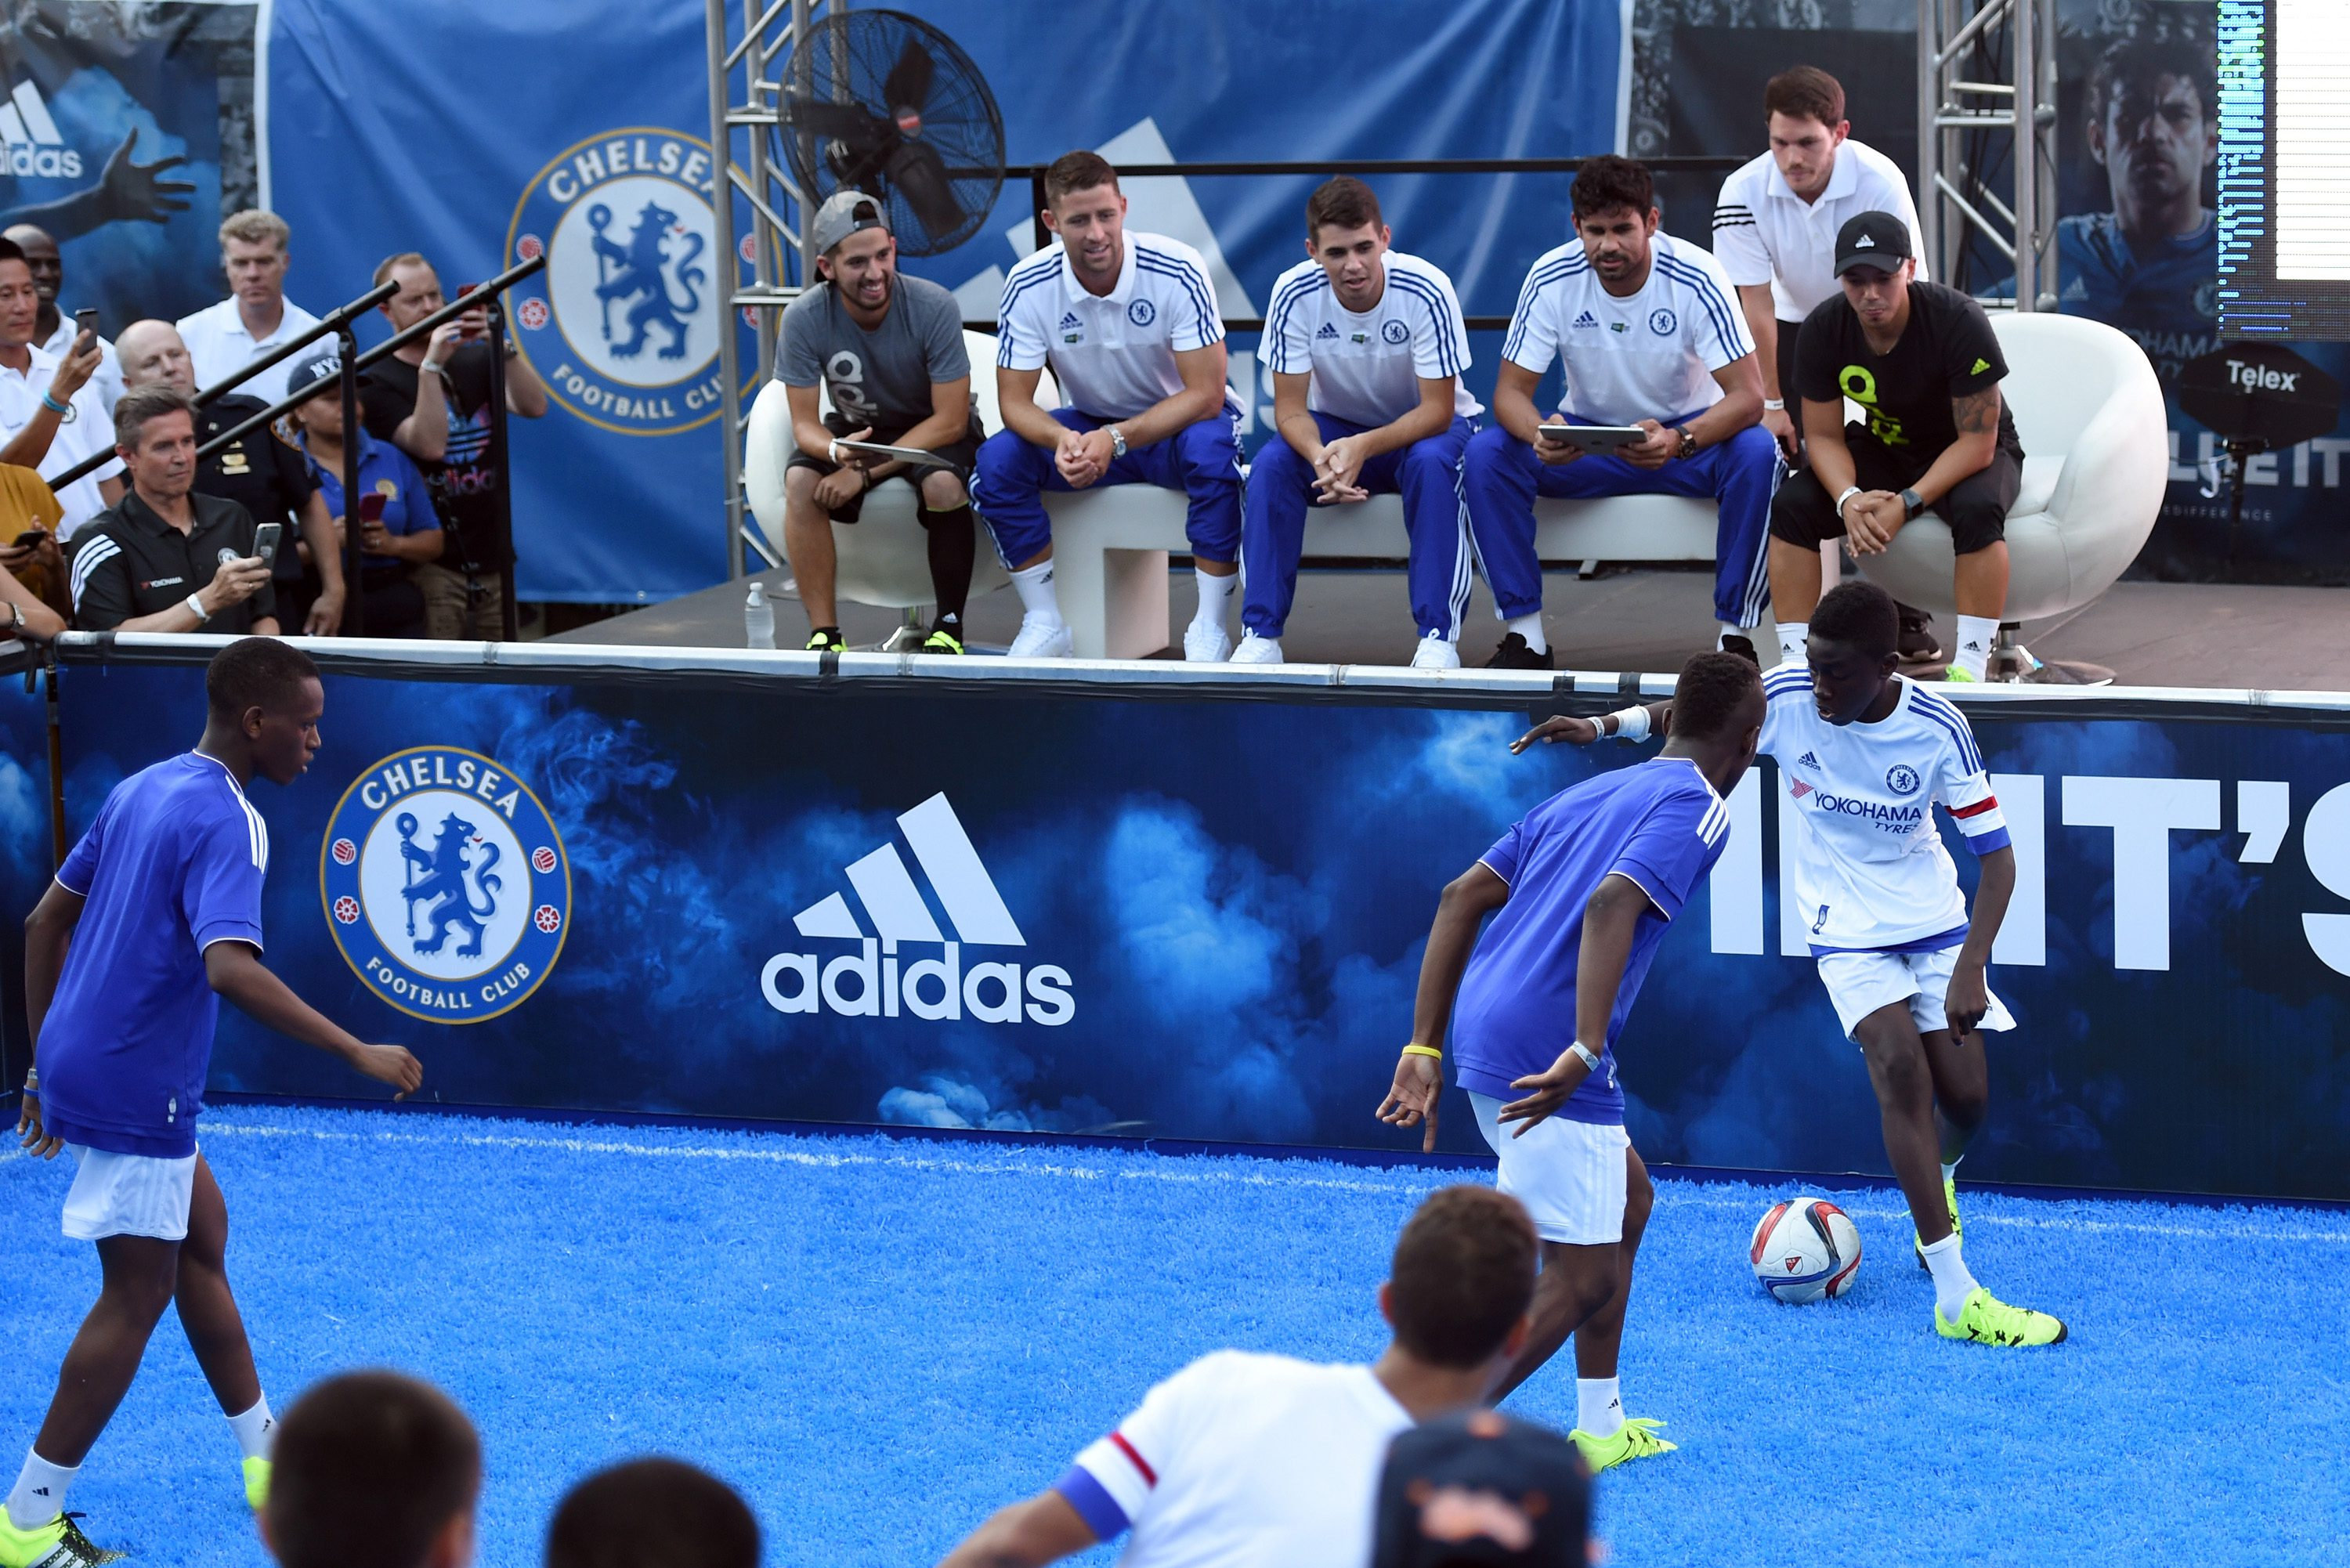 Chelsea's Gary Cahill, Oscar, Diego Costa during the Adidas Be The Difference Event on 21st July 2015 at the FC Harlem Training Ground in Harlem, New York, USA.